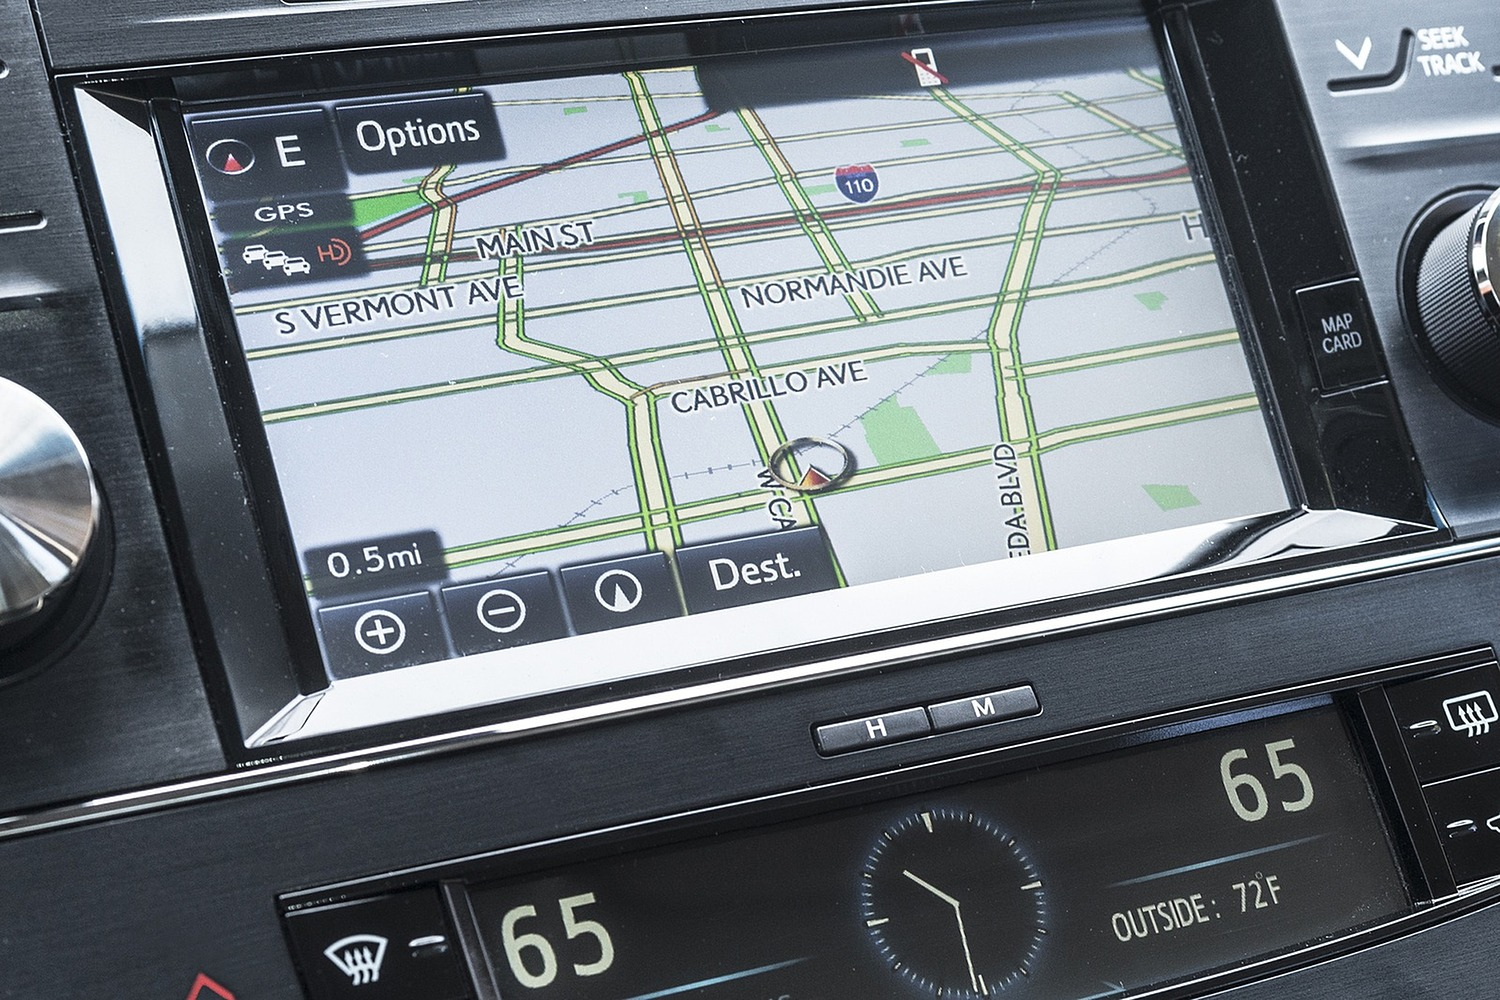 Toyota Avalon Hybrid Sedan Navigation System (2017 model year shown)